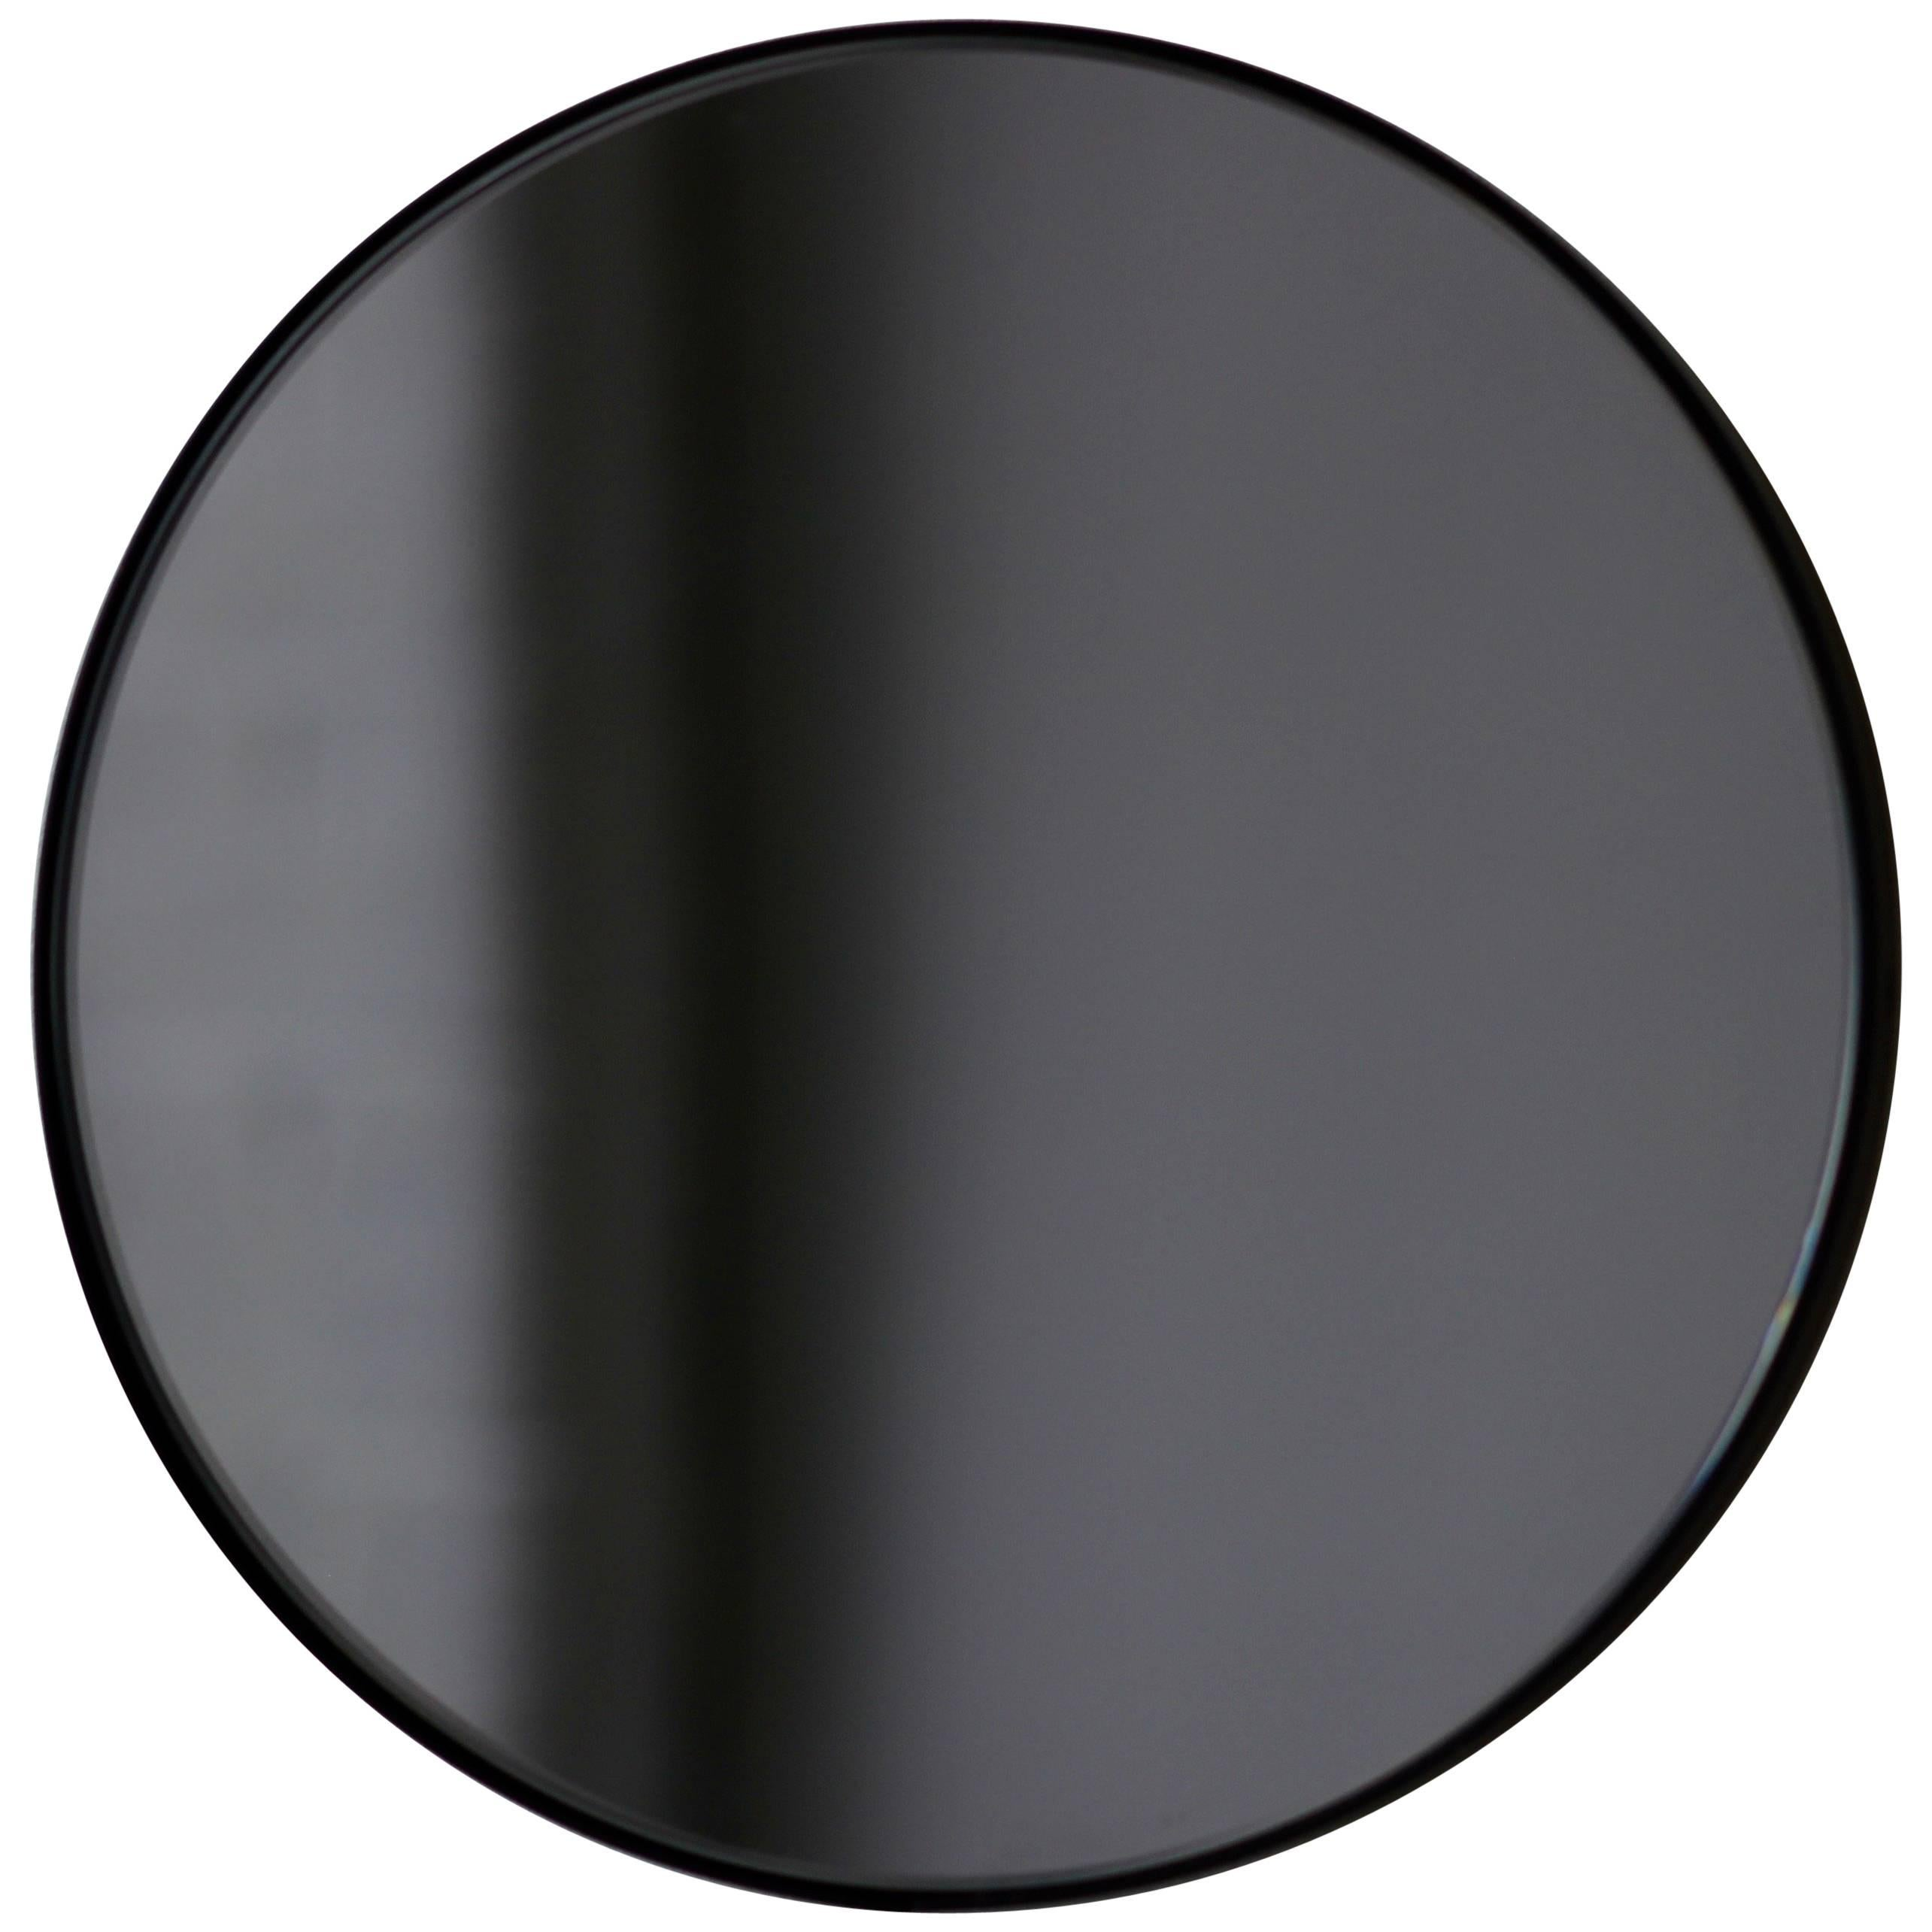 Orbis™ Black Tinted Modern Handcrafted Circular Mirror with Black Frame